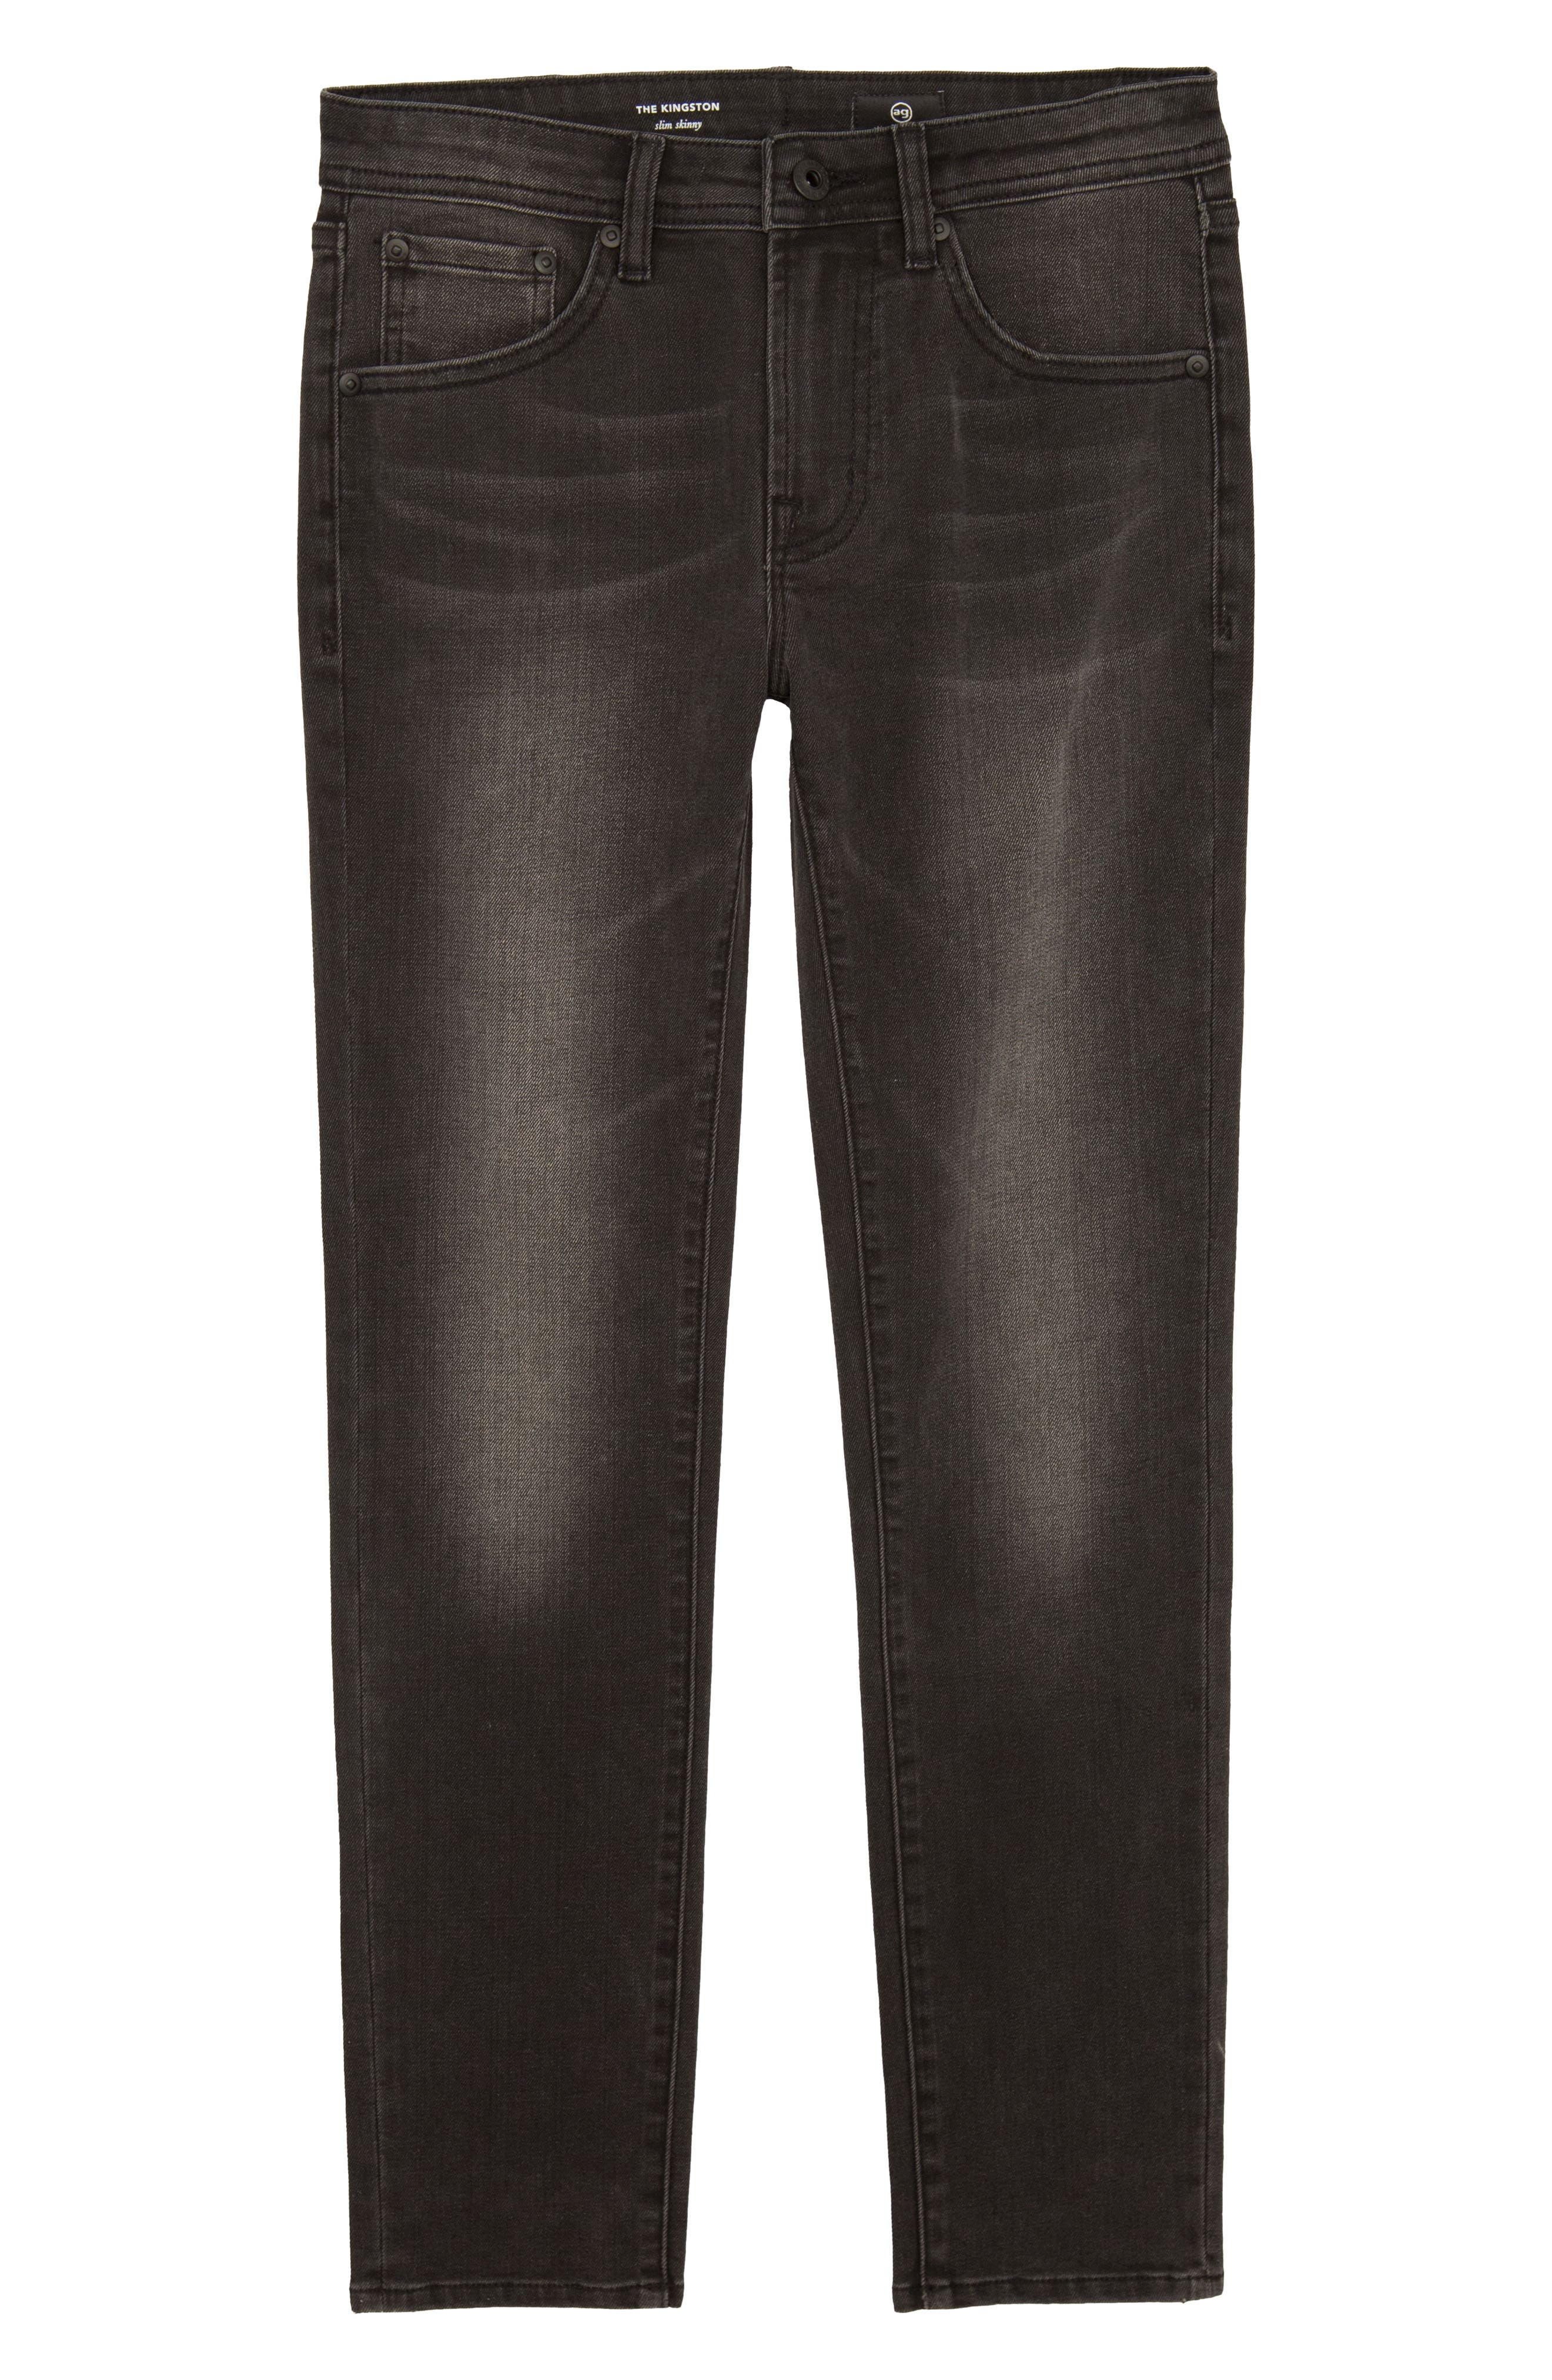 ag adriano goldschmied kids The Kingston Slim Jeans (Toddler Boys, Little Boys & Big Boys)